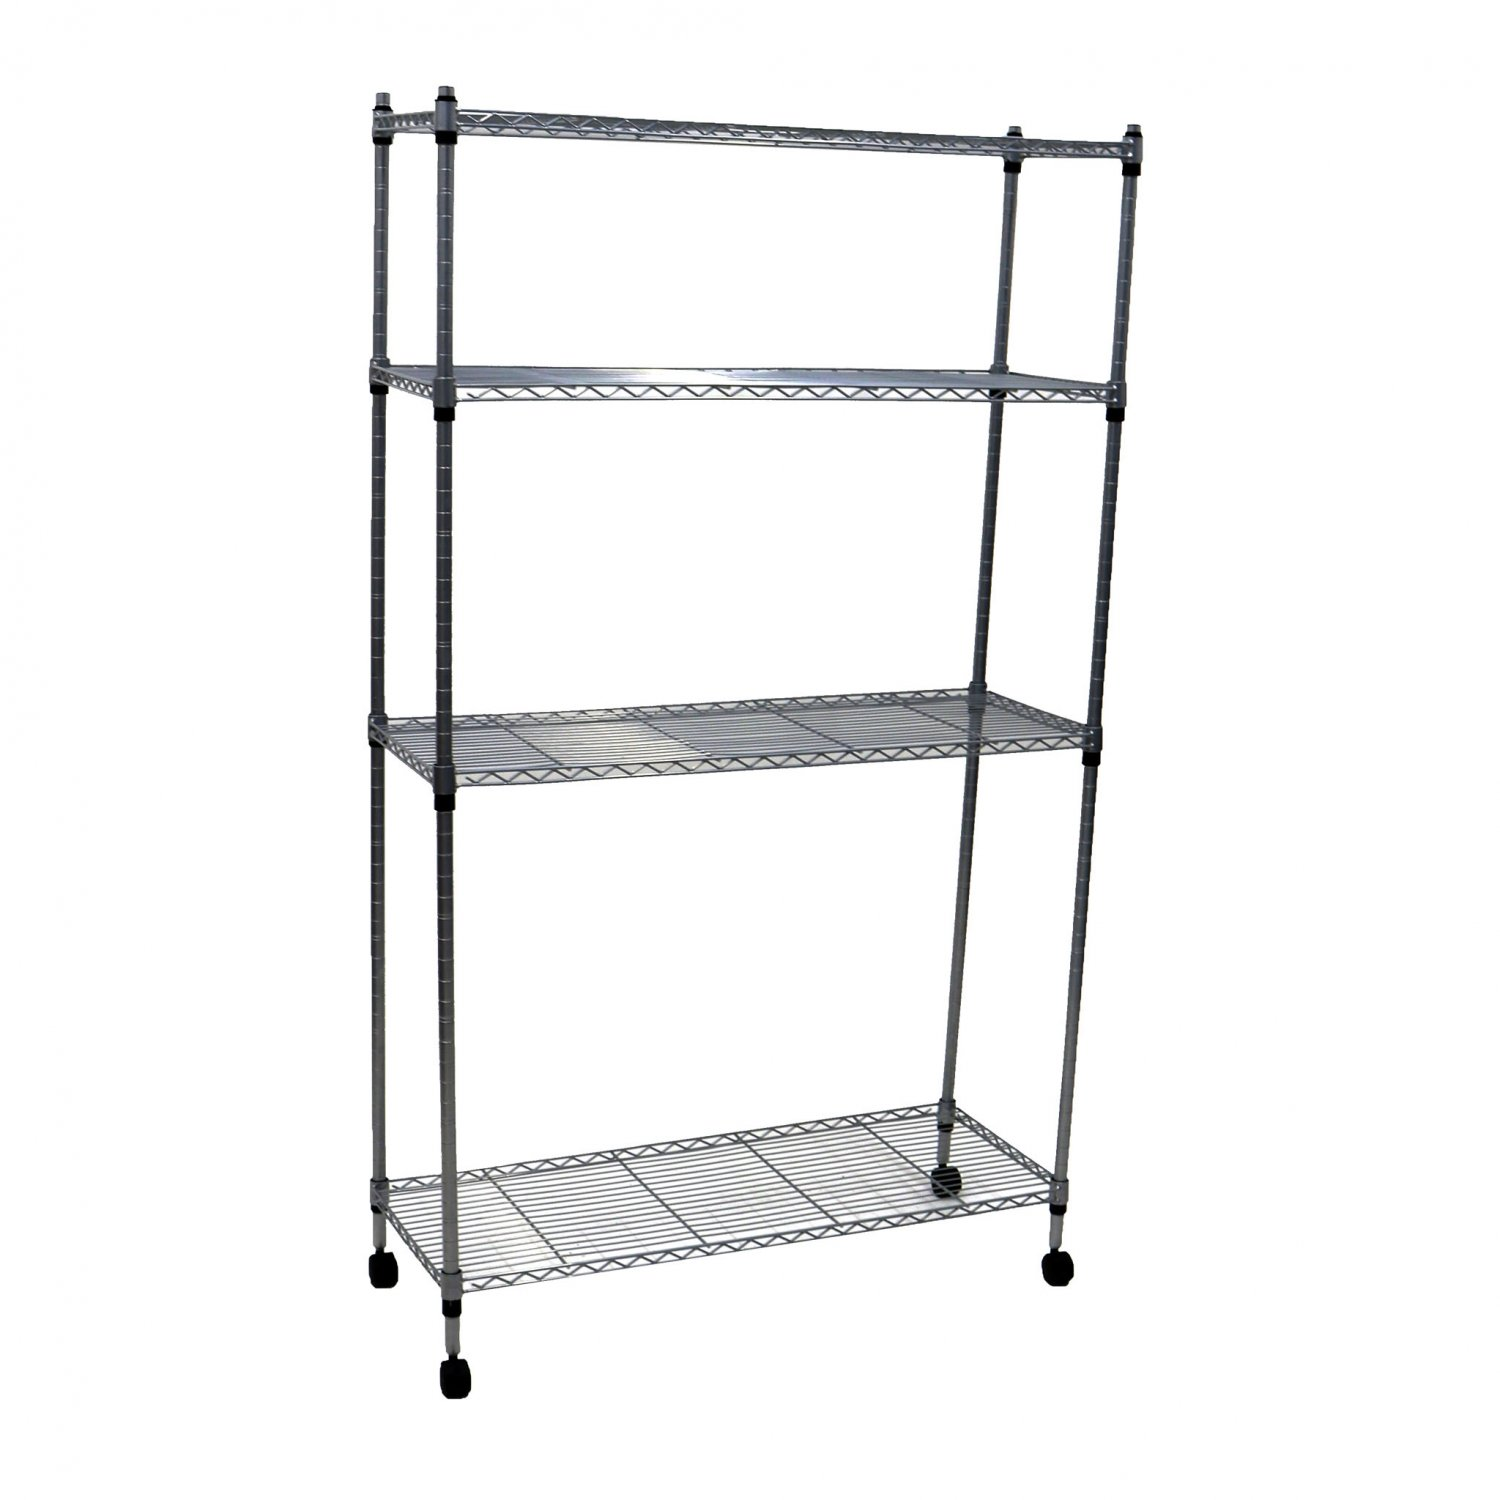 4 Tier Heavy Duty Steel Wire Rack Kitchen Storage Unit w/ Wheels ...